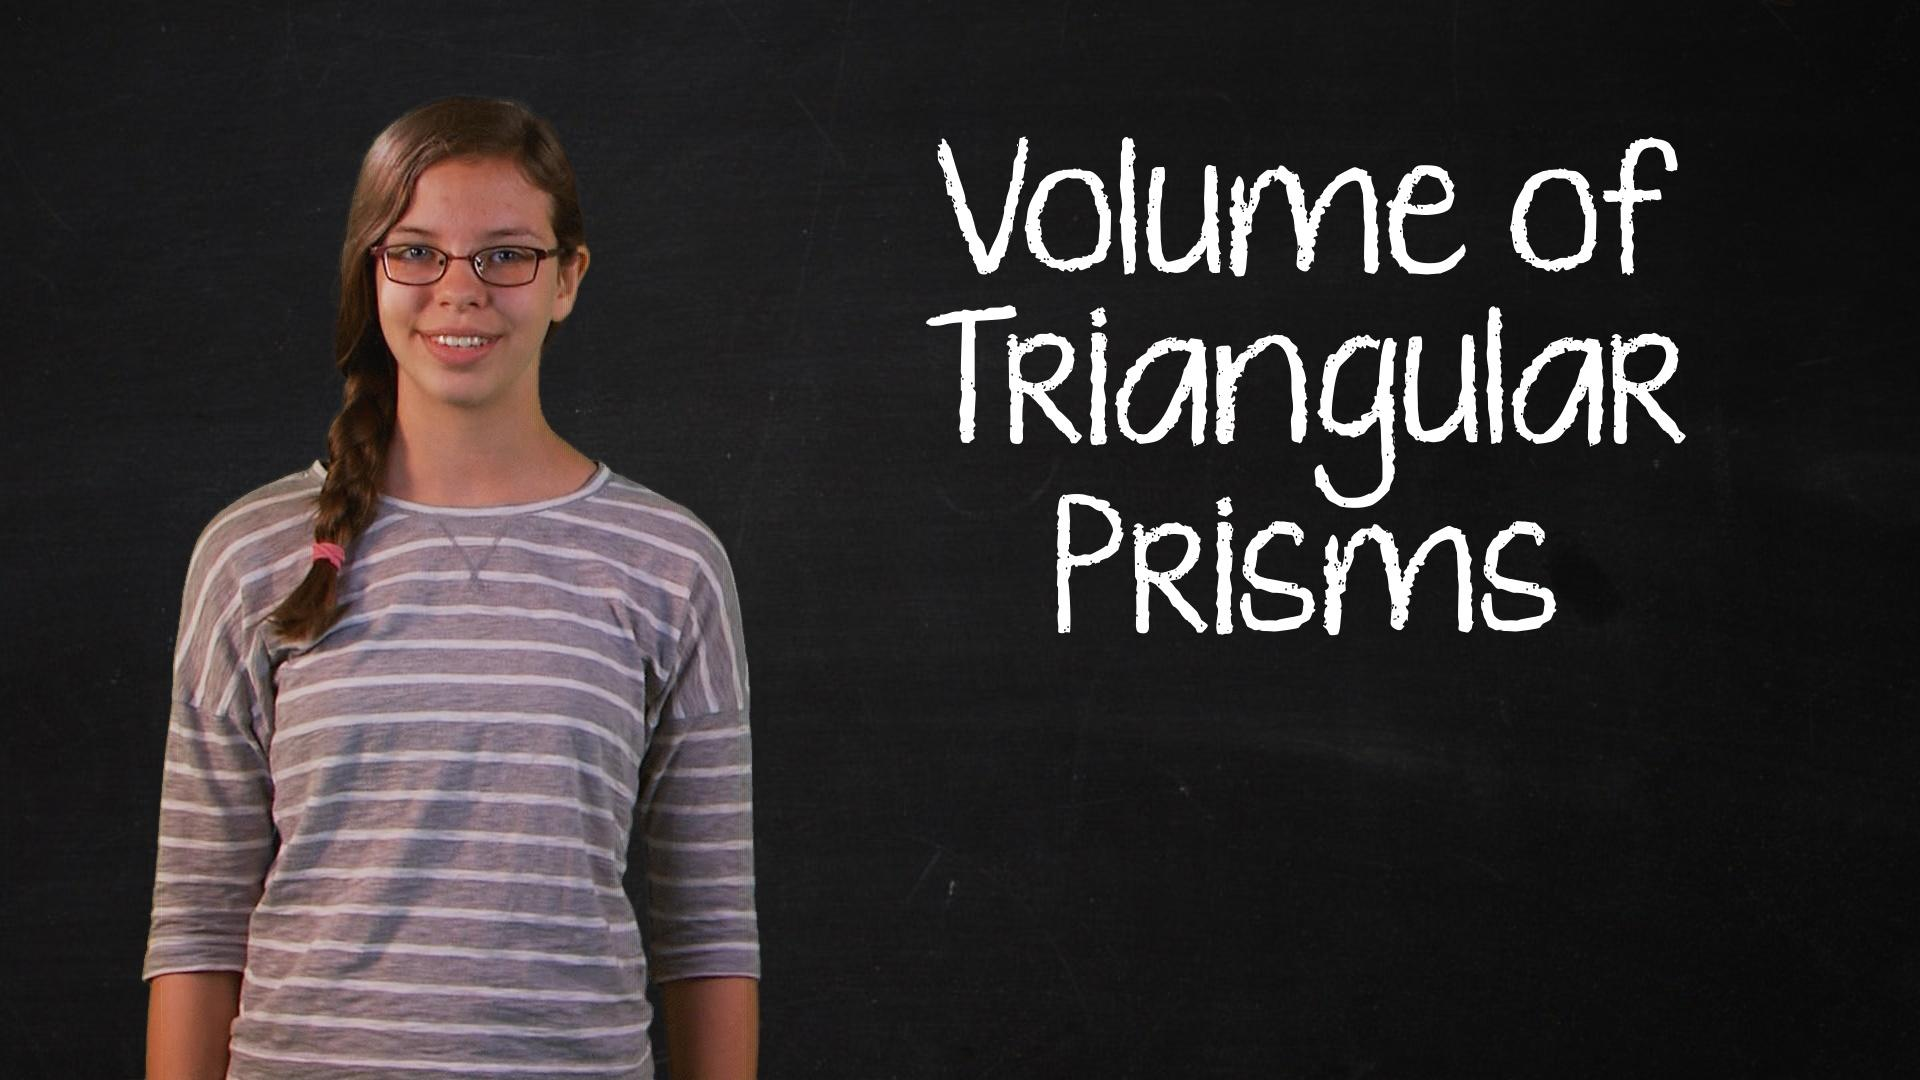 How To Find The Volume Of A Triangular Based Prism